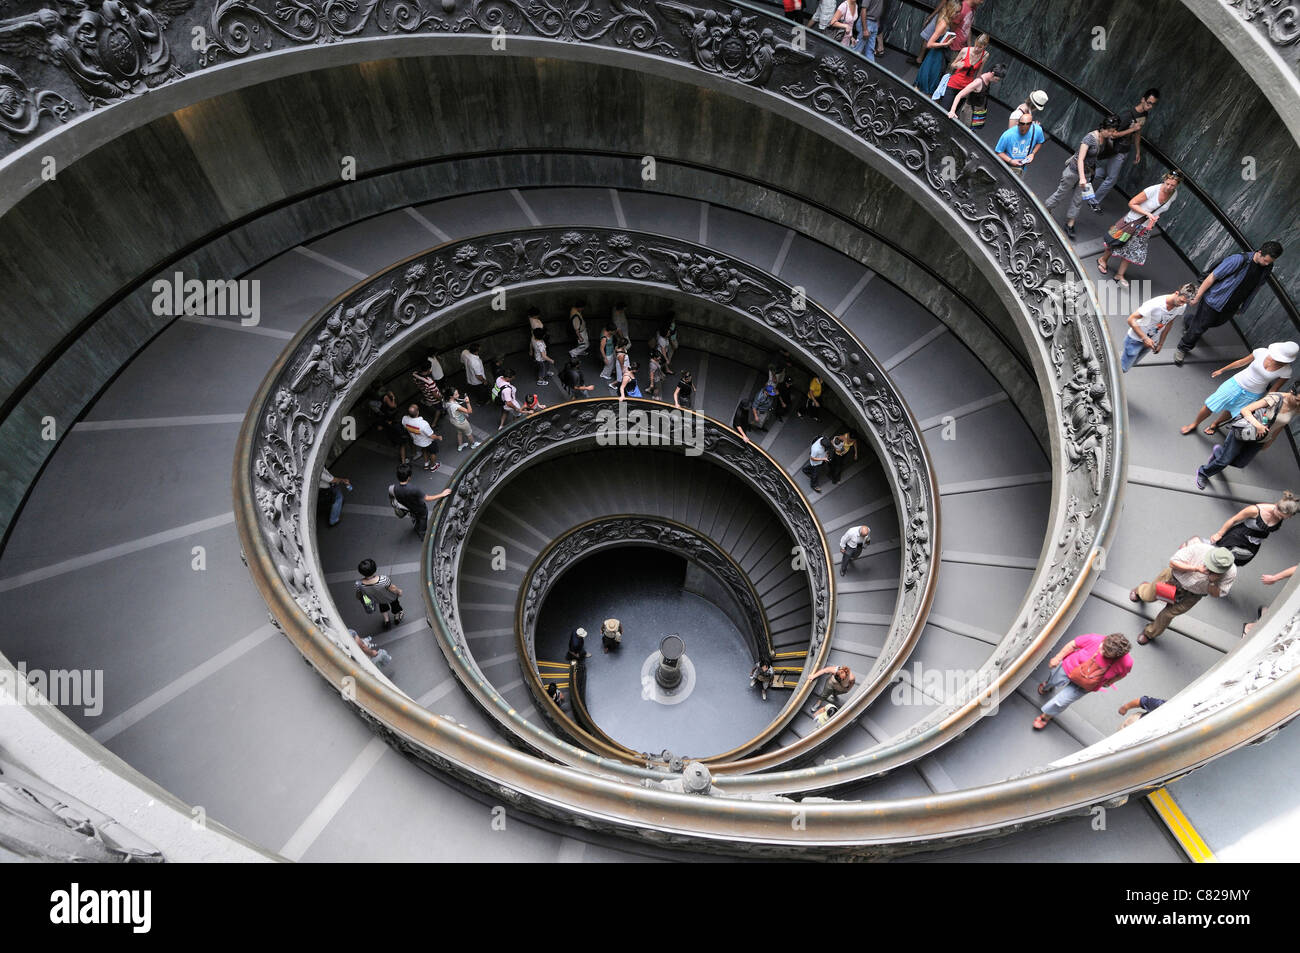 Spiral staircase in the Vatican Museums, Vatican City, Rome, Italy - Stock Image